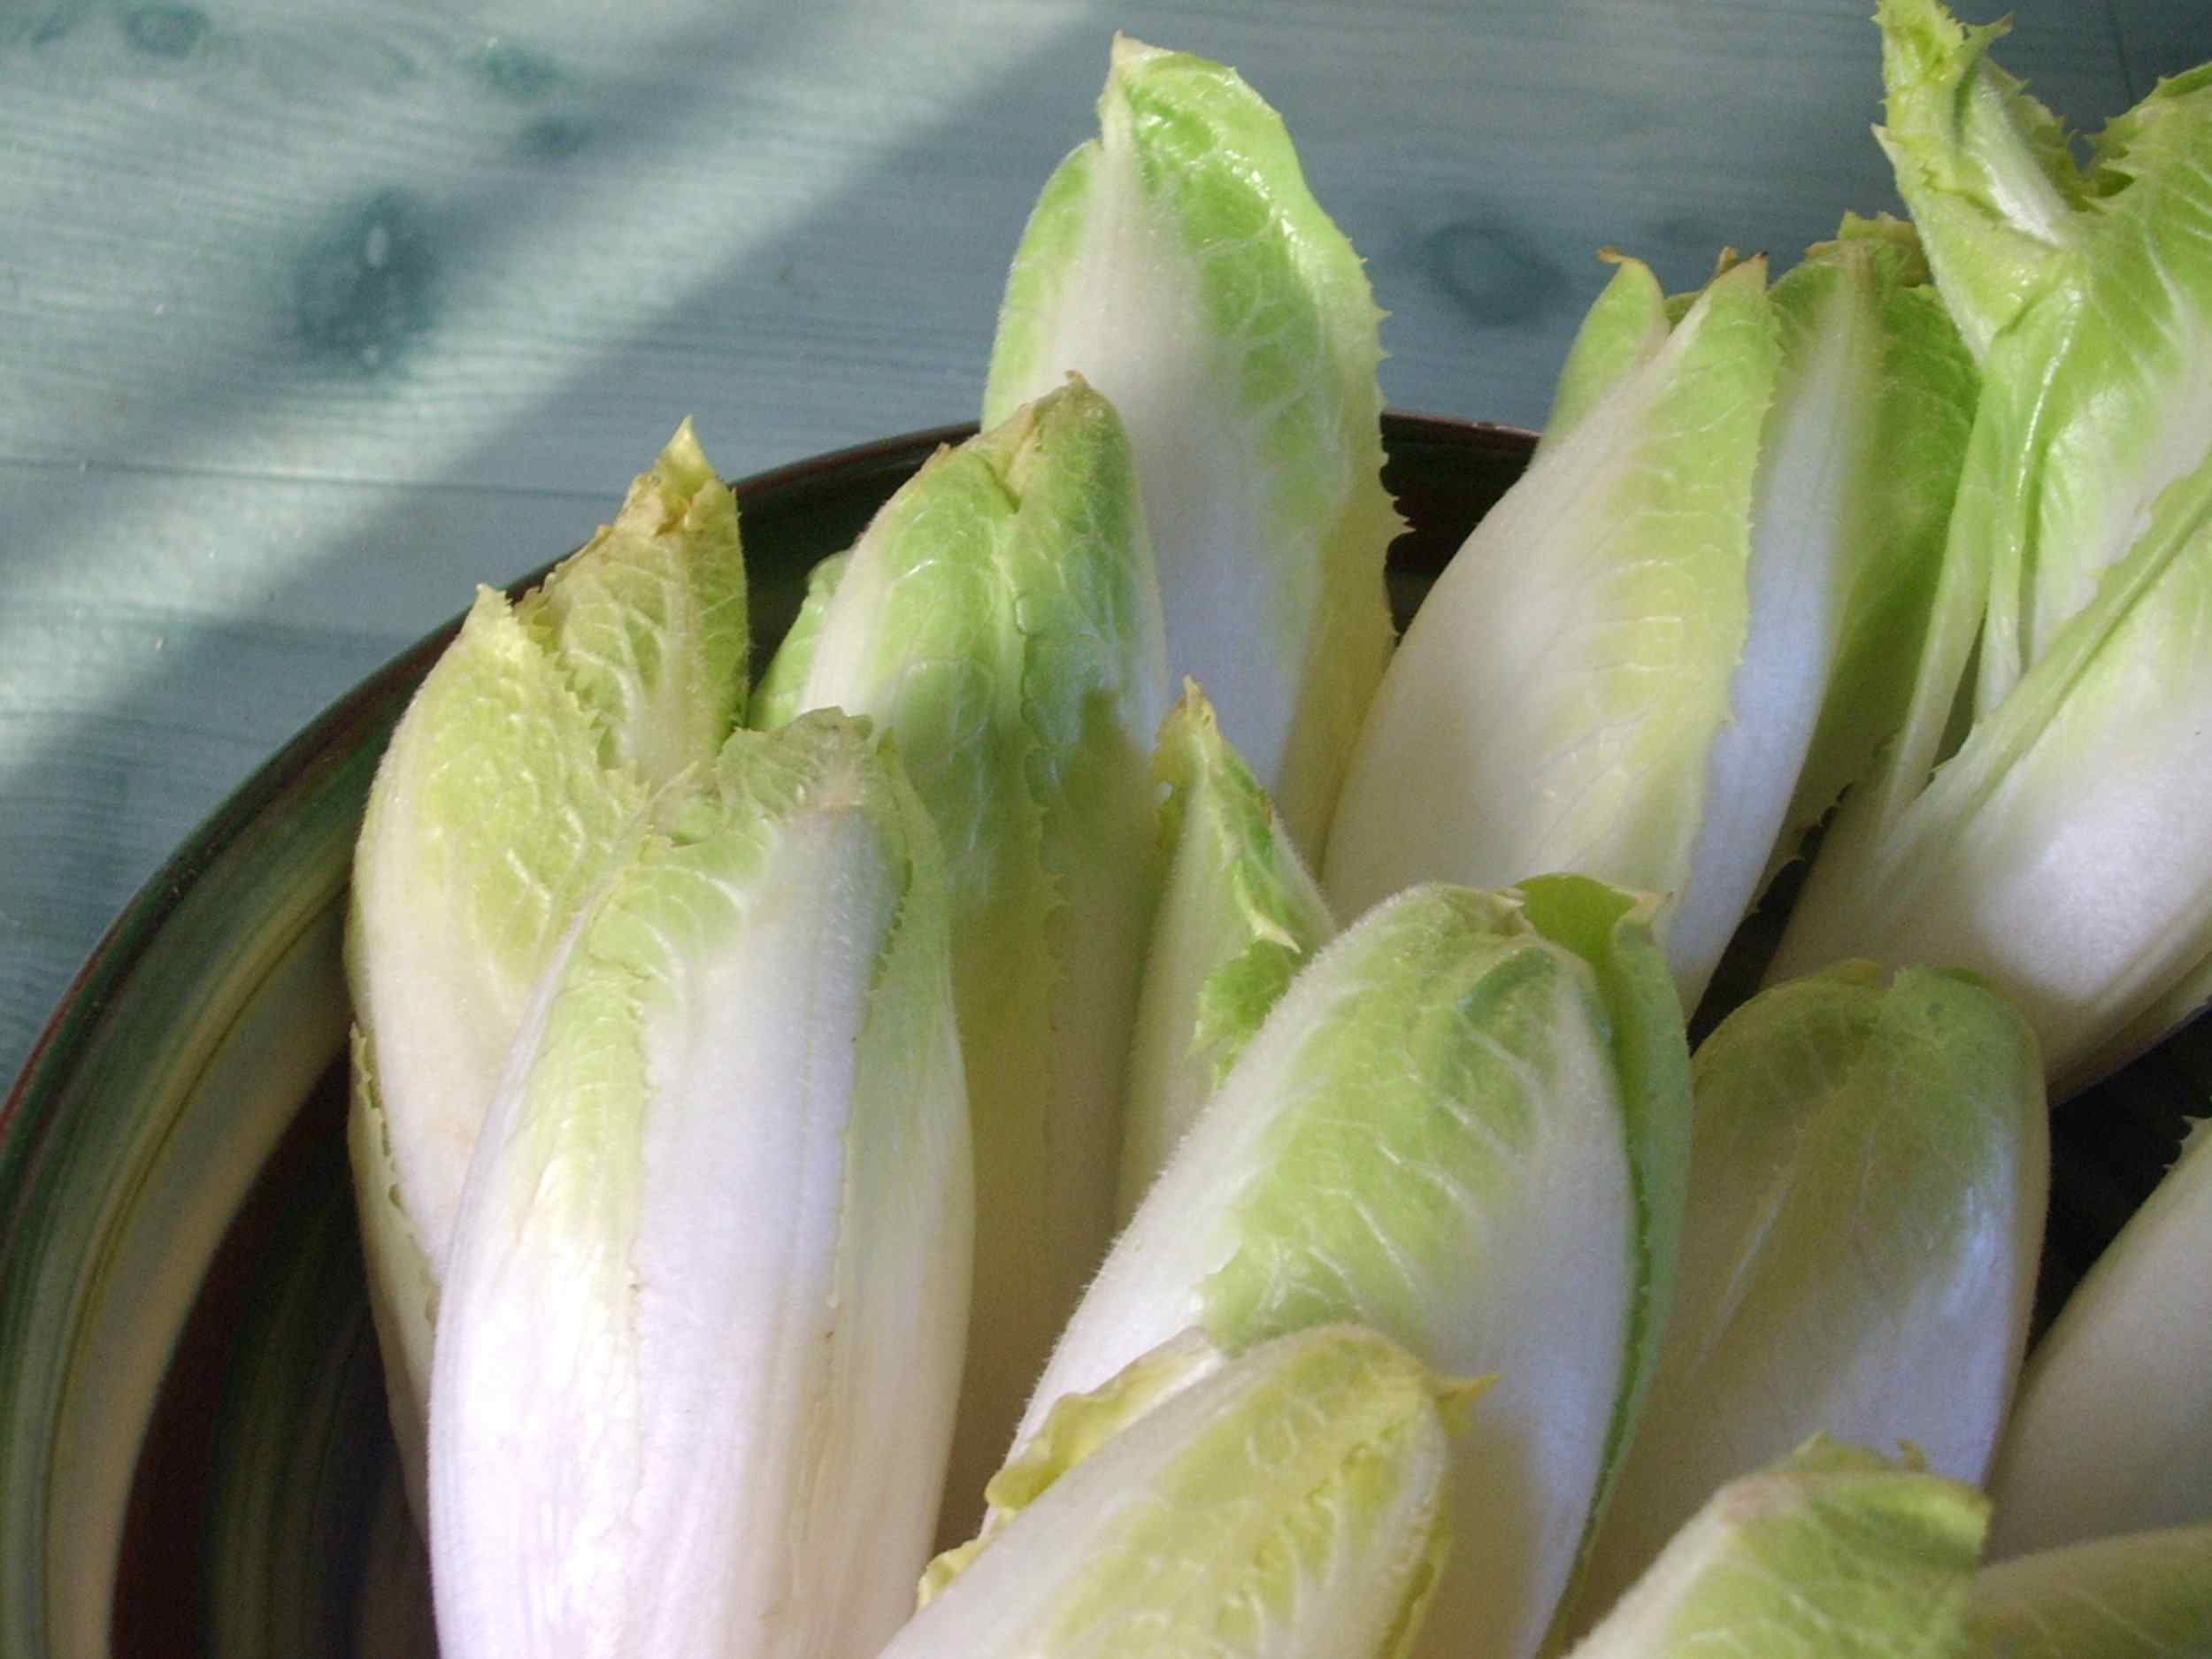 Endive is high in folate.